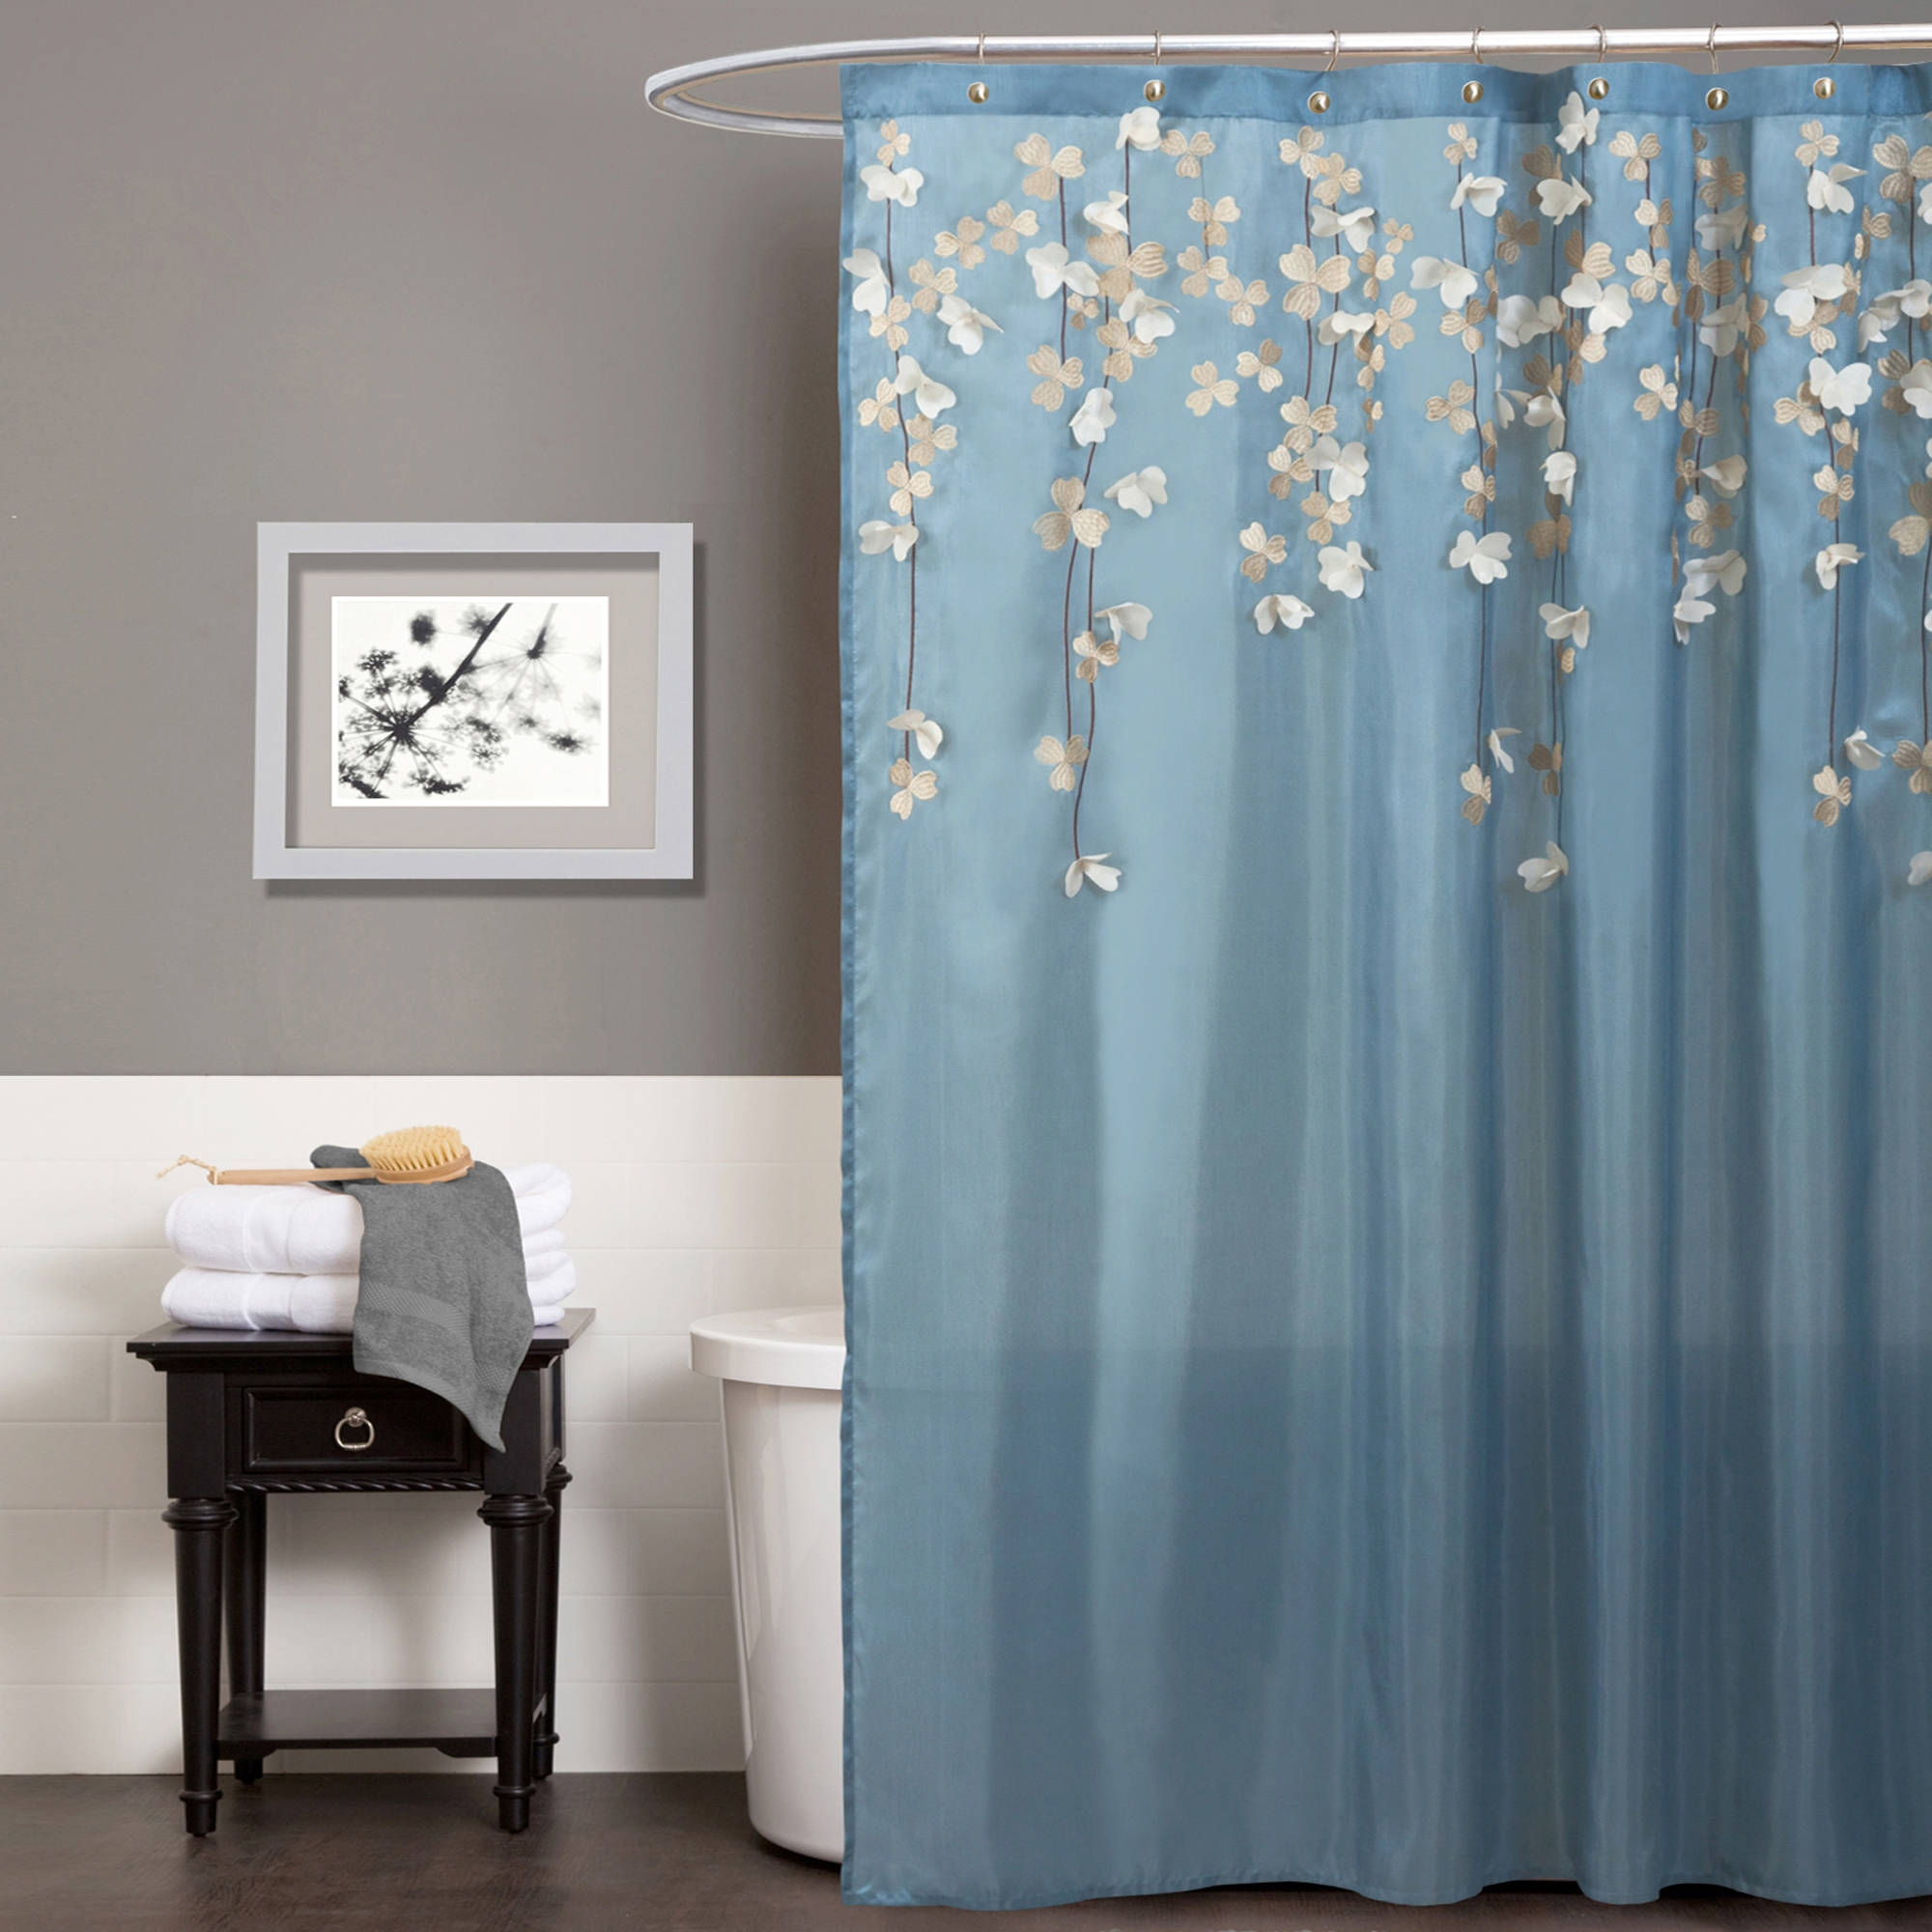 Asian Inspired Shower Curtain Curtains Decoration With Regard To Asian Curtains Drapes (Image 9 of 25)